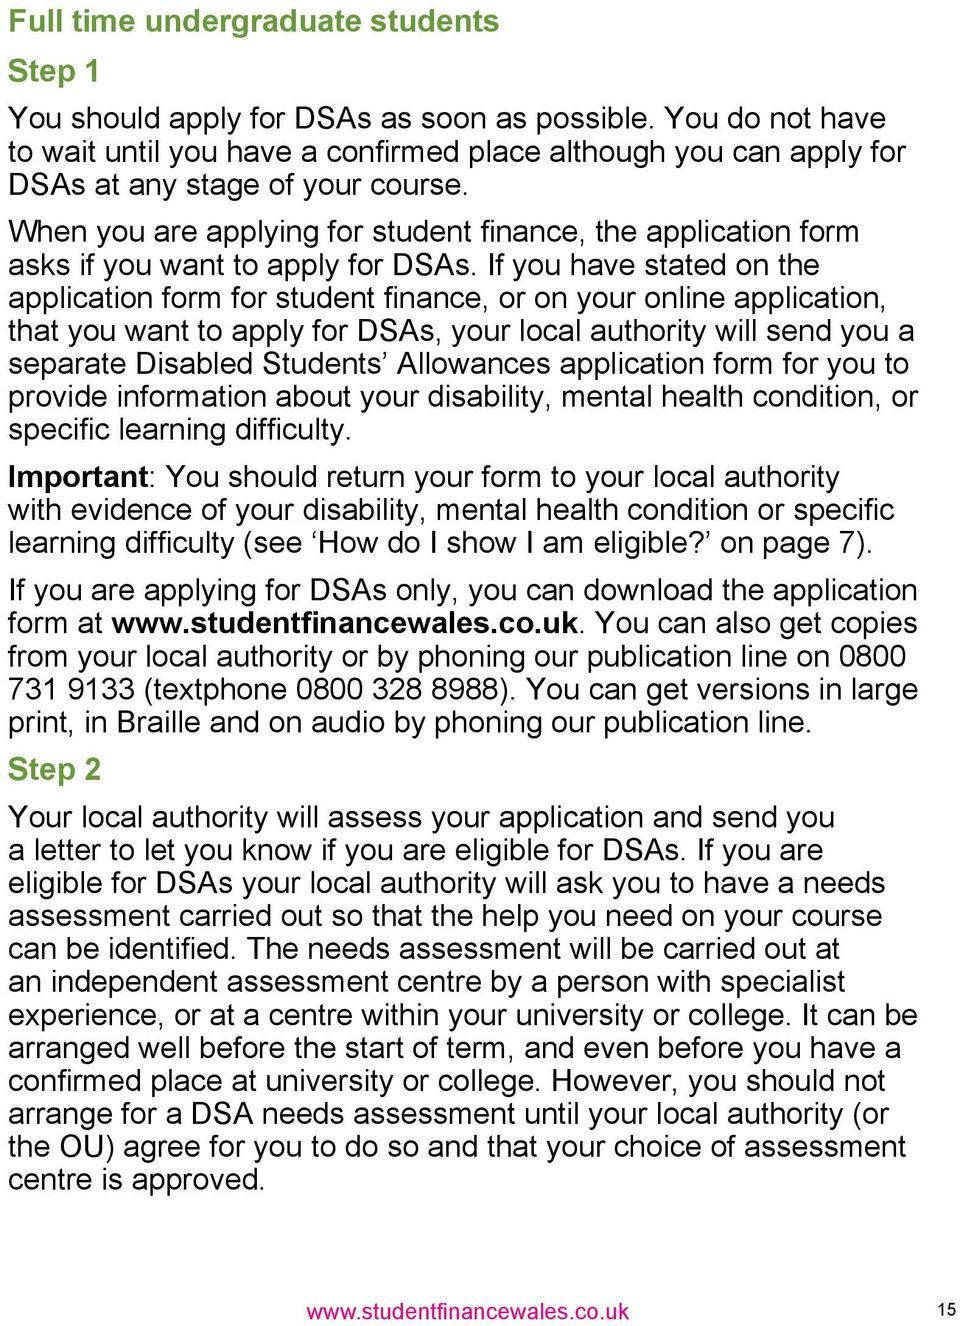 When you are applying for student finance, the application form asks if you want to apply for DSAs.